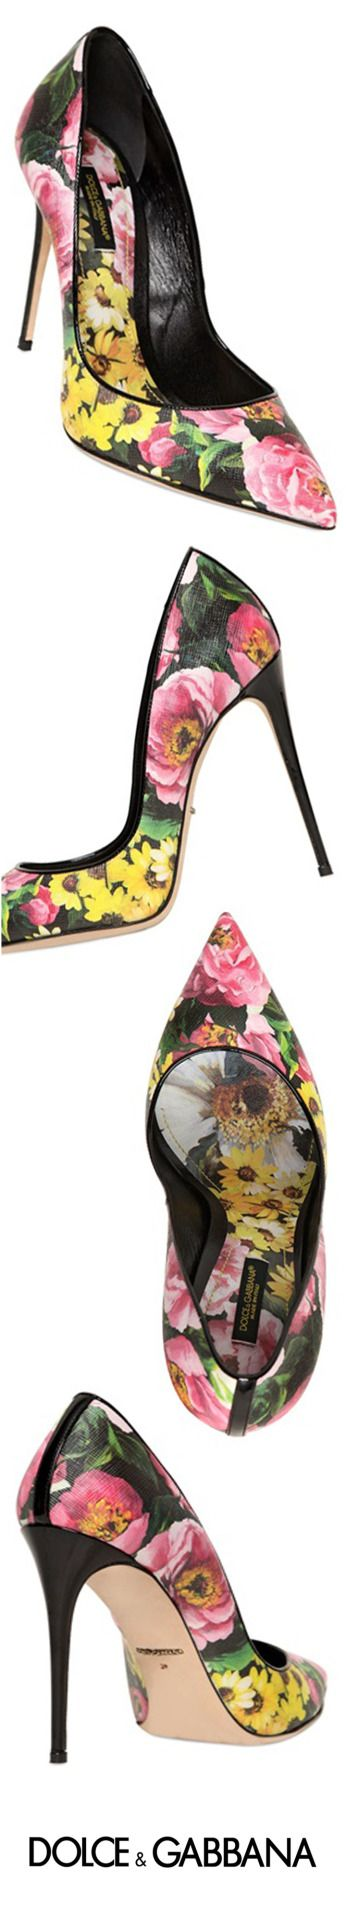 Shoes and Accessories Cynthia Reccord. Dolce & Gabbana  SS 2015